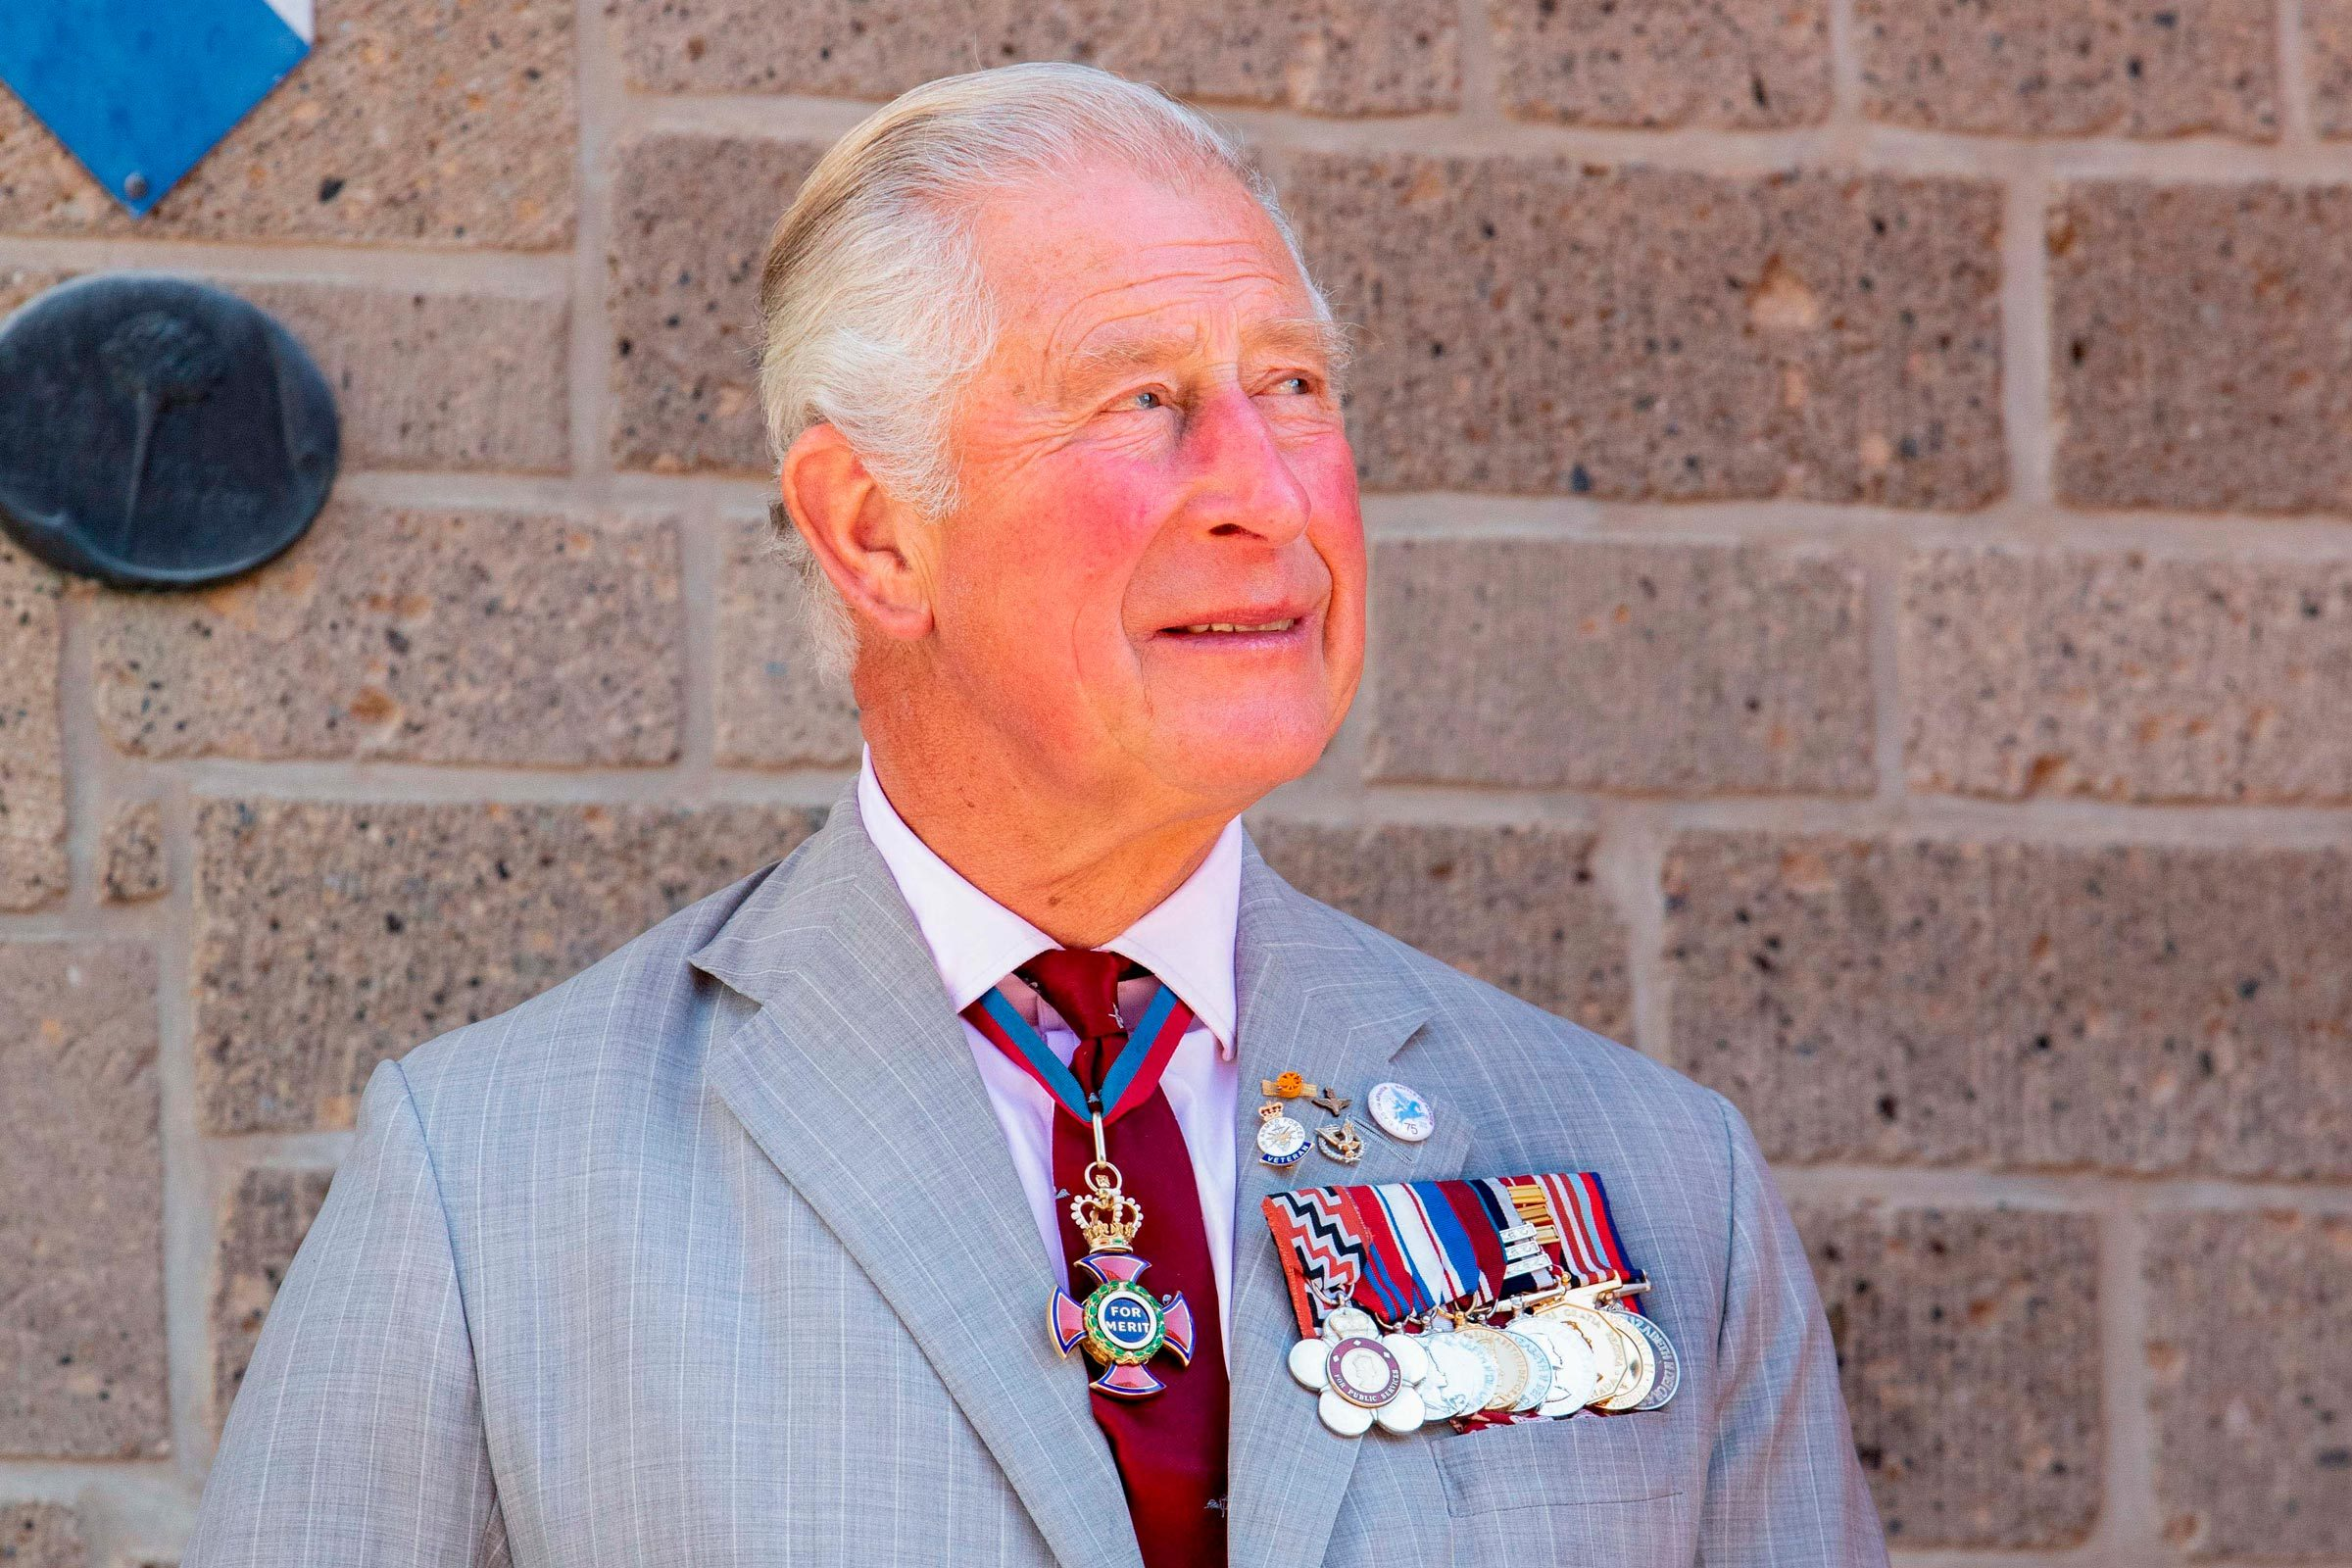 Prince Charles of Wales attends the opening of the restored tower of the Eusebius Church within the commemorations of the Operation Market Garden's 75th anniversary in Arnhem, The Netherlands 21 Sep 2019